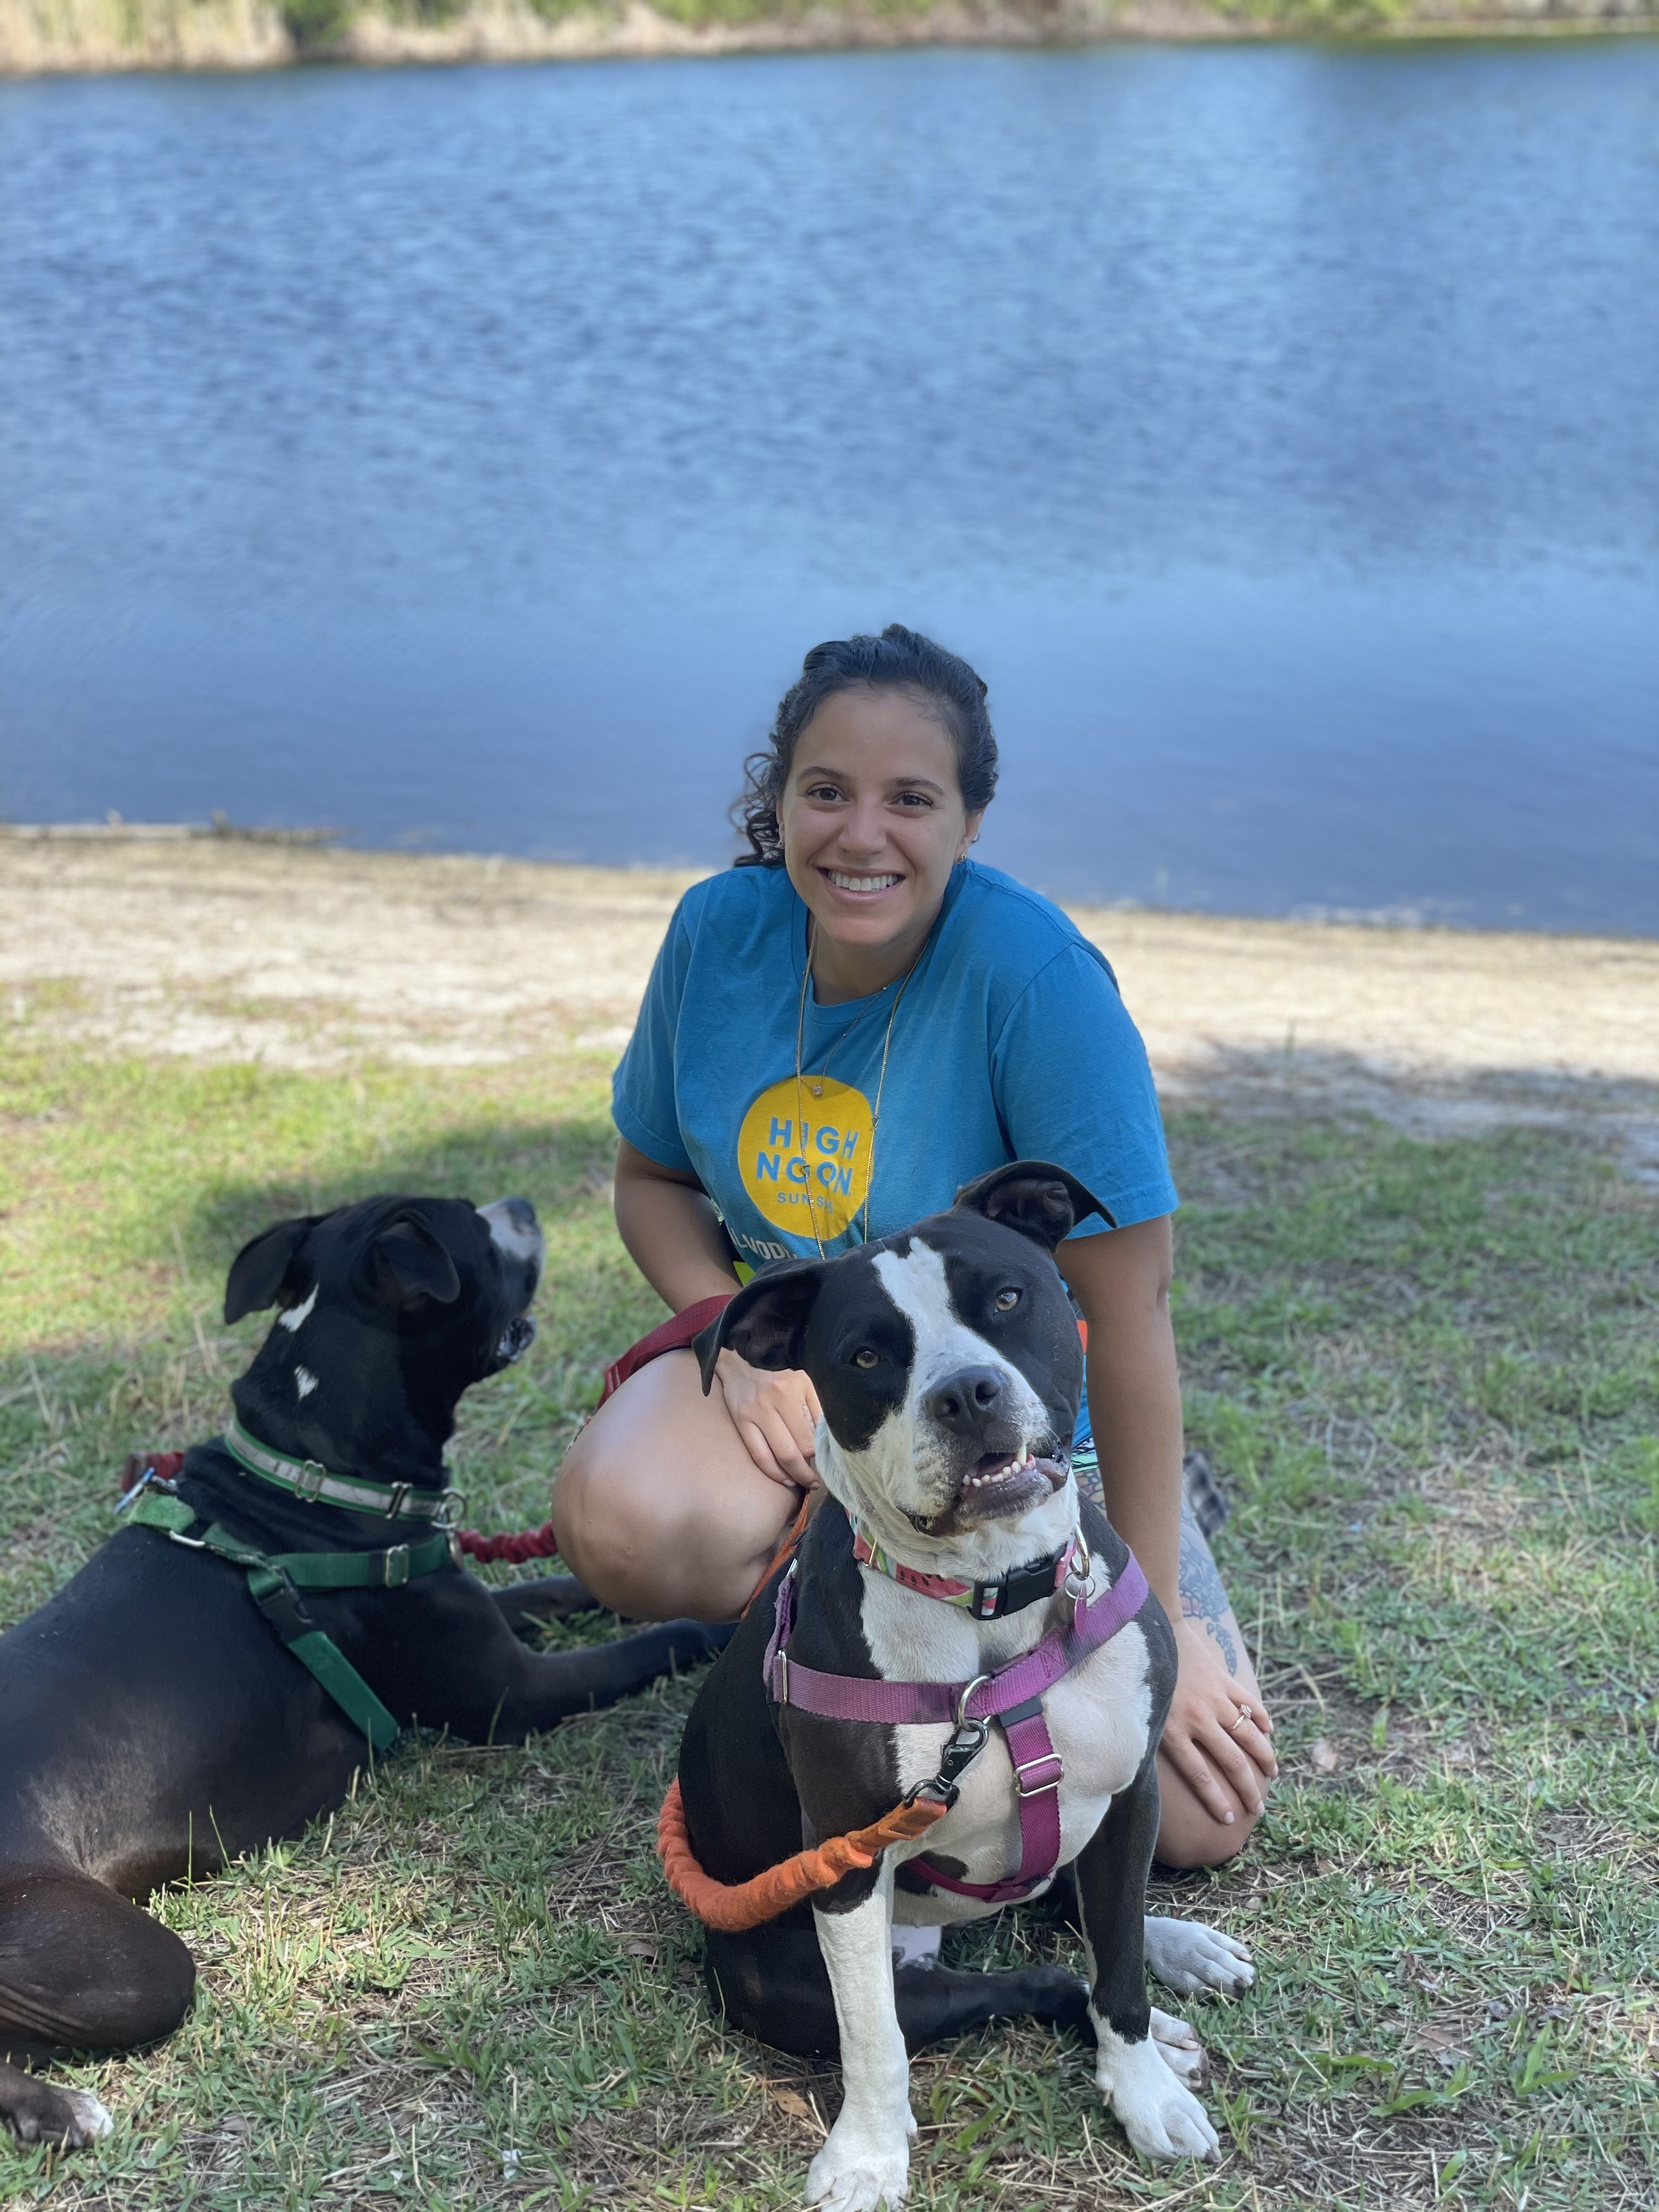 Dog trainer with 2 happy dogs near a lake